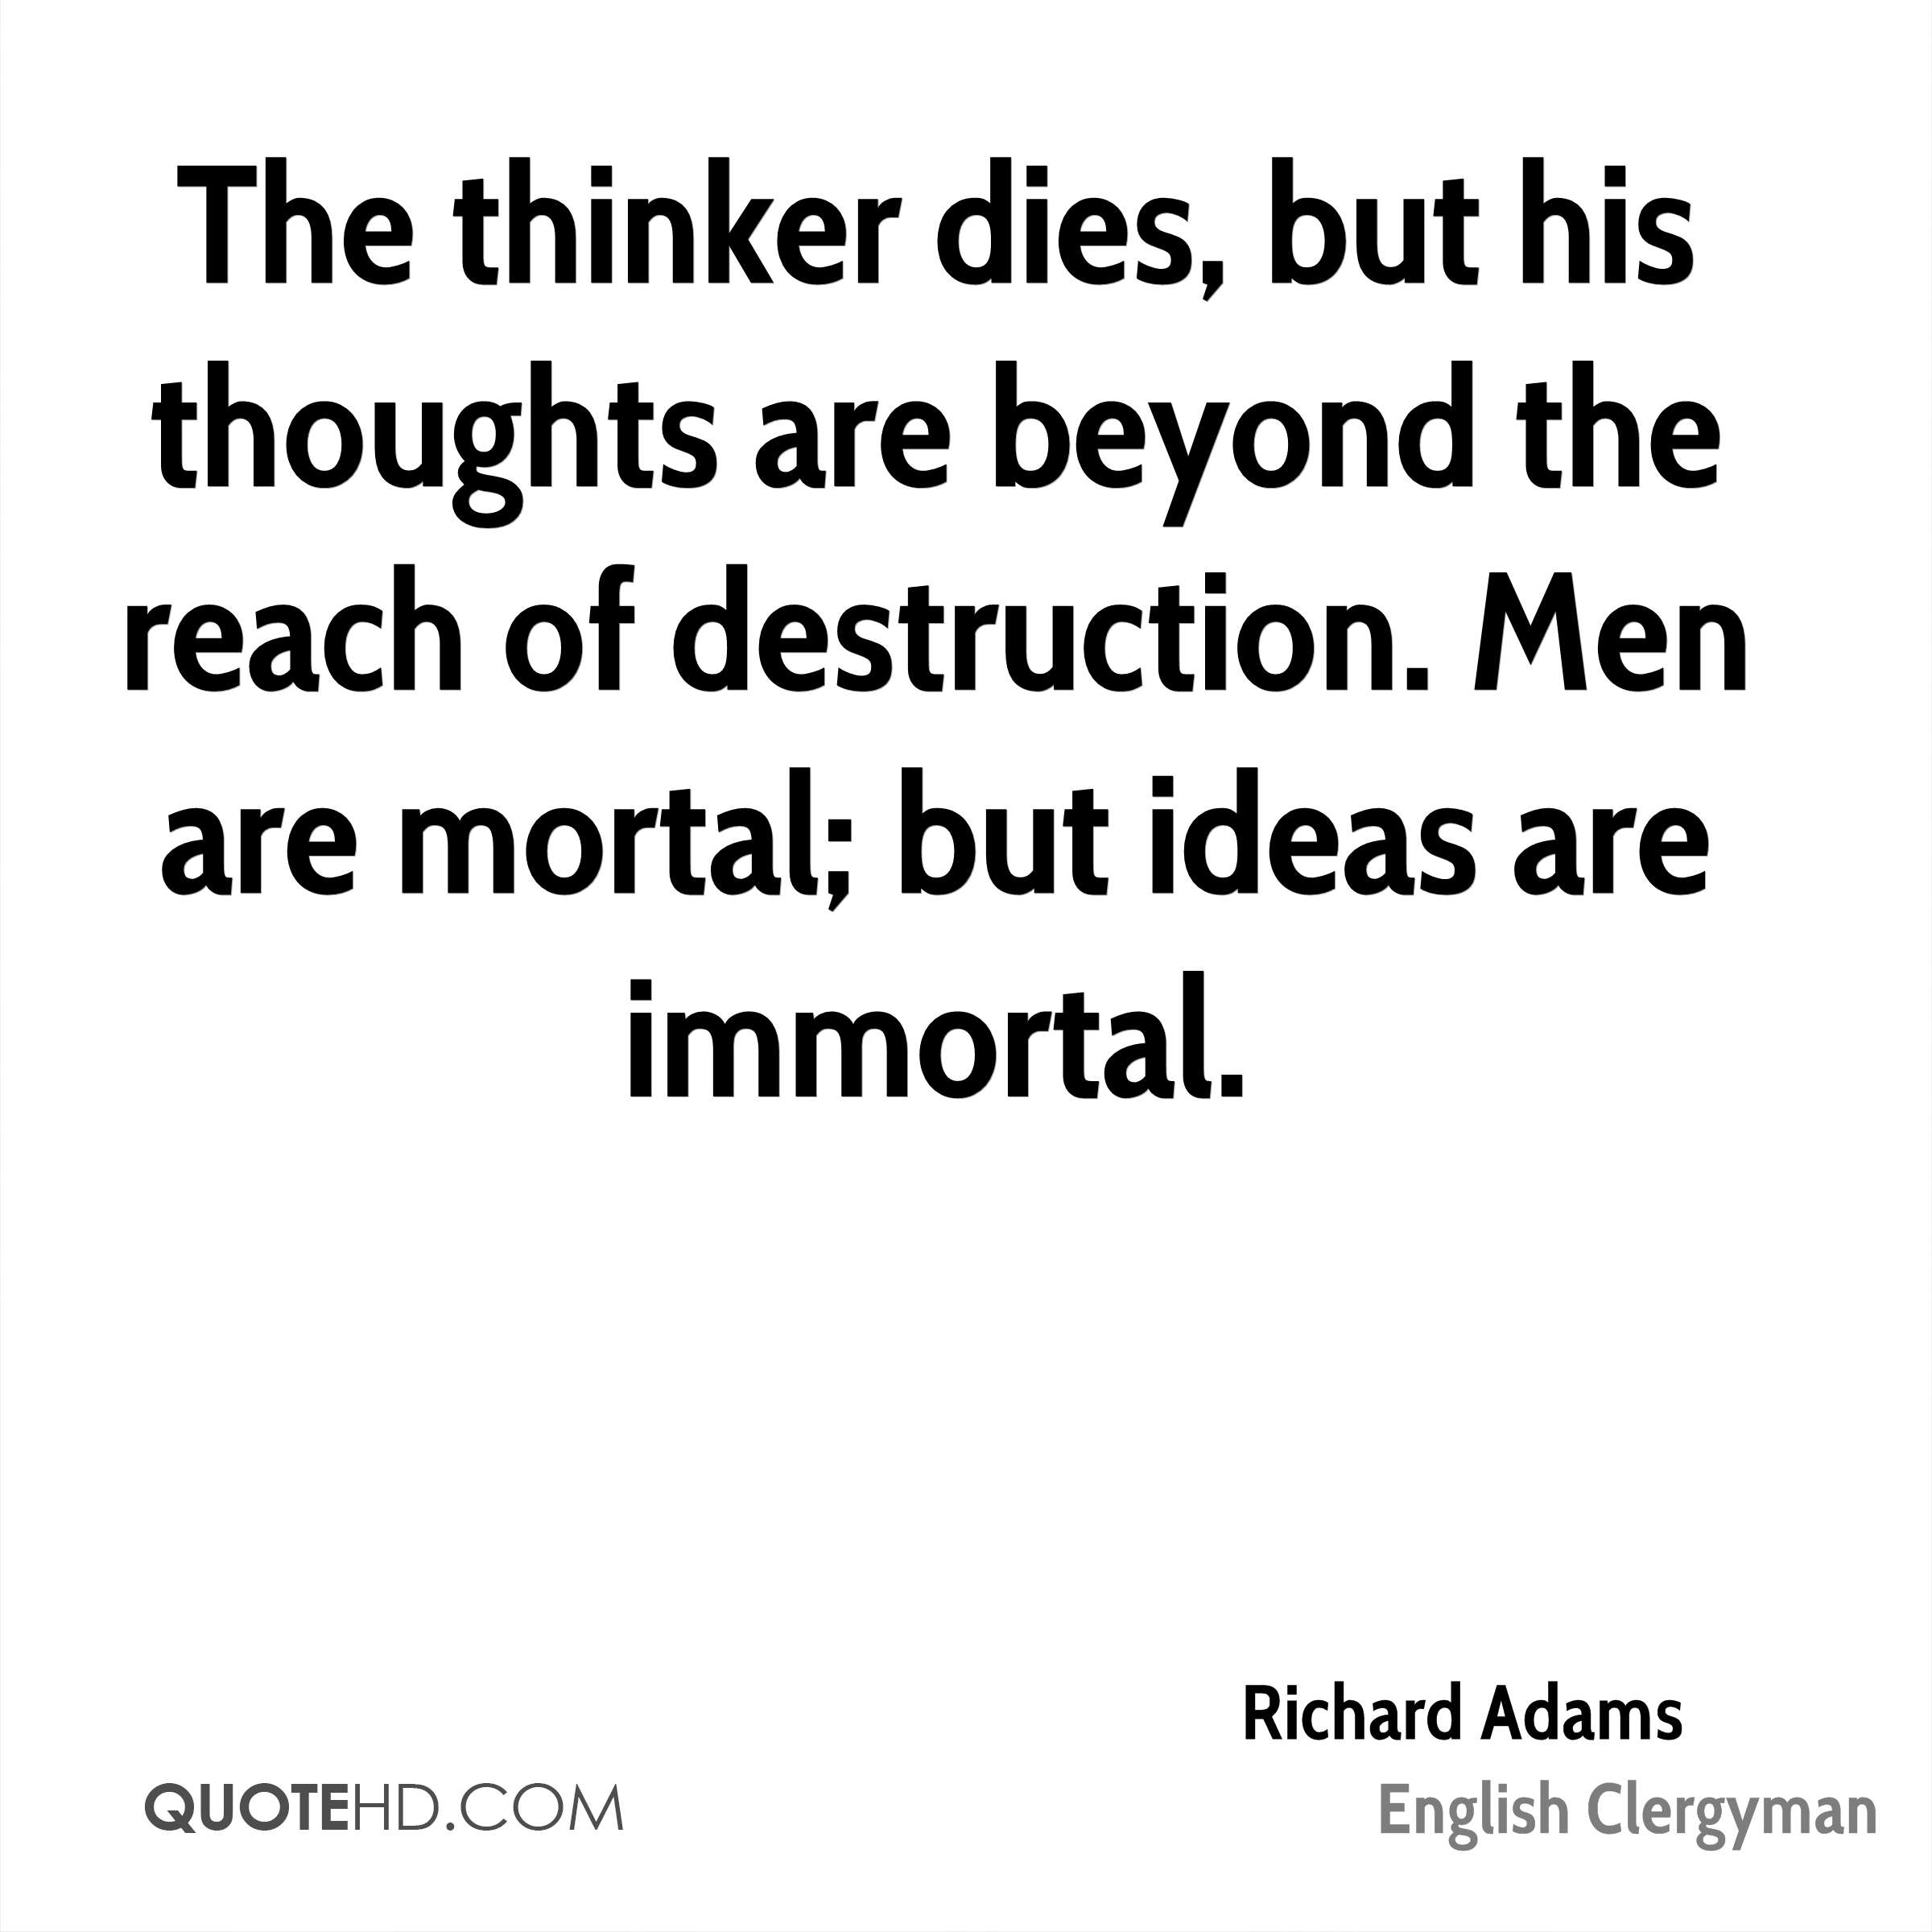 The thinker dies, but his thoughts are beyond the reach of destruction. Men are mortal; but ideas are immortal.